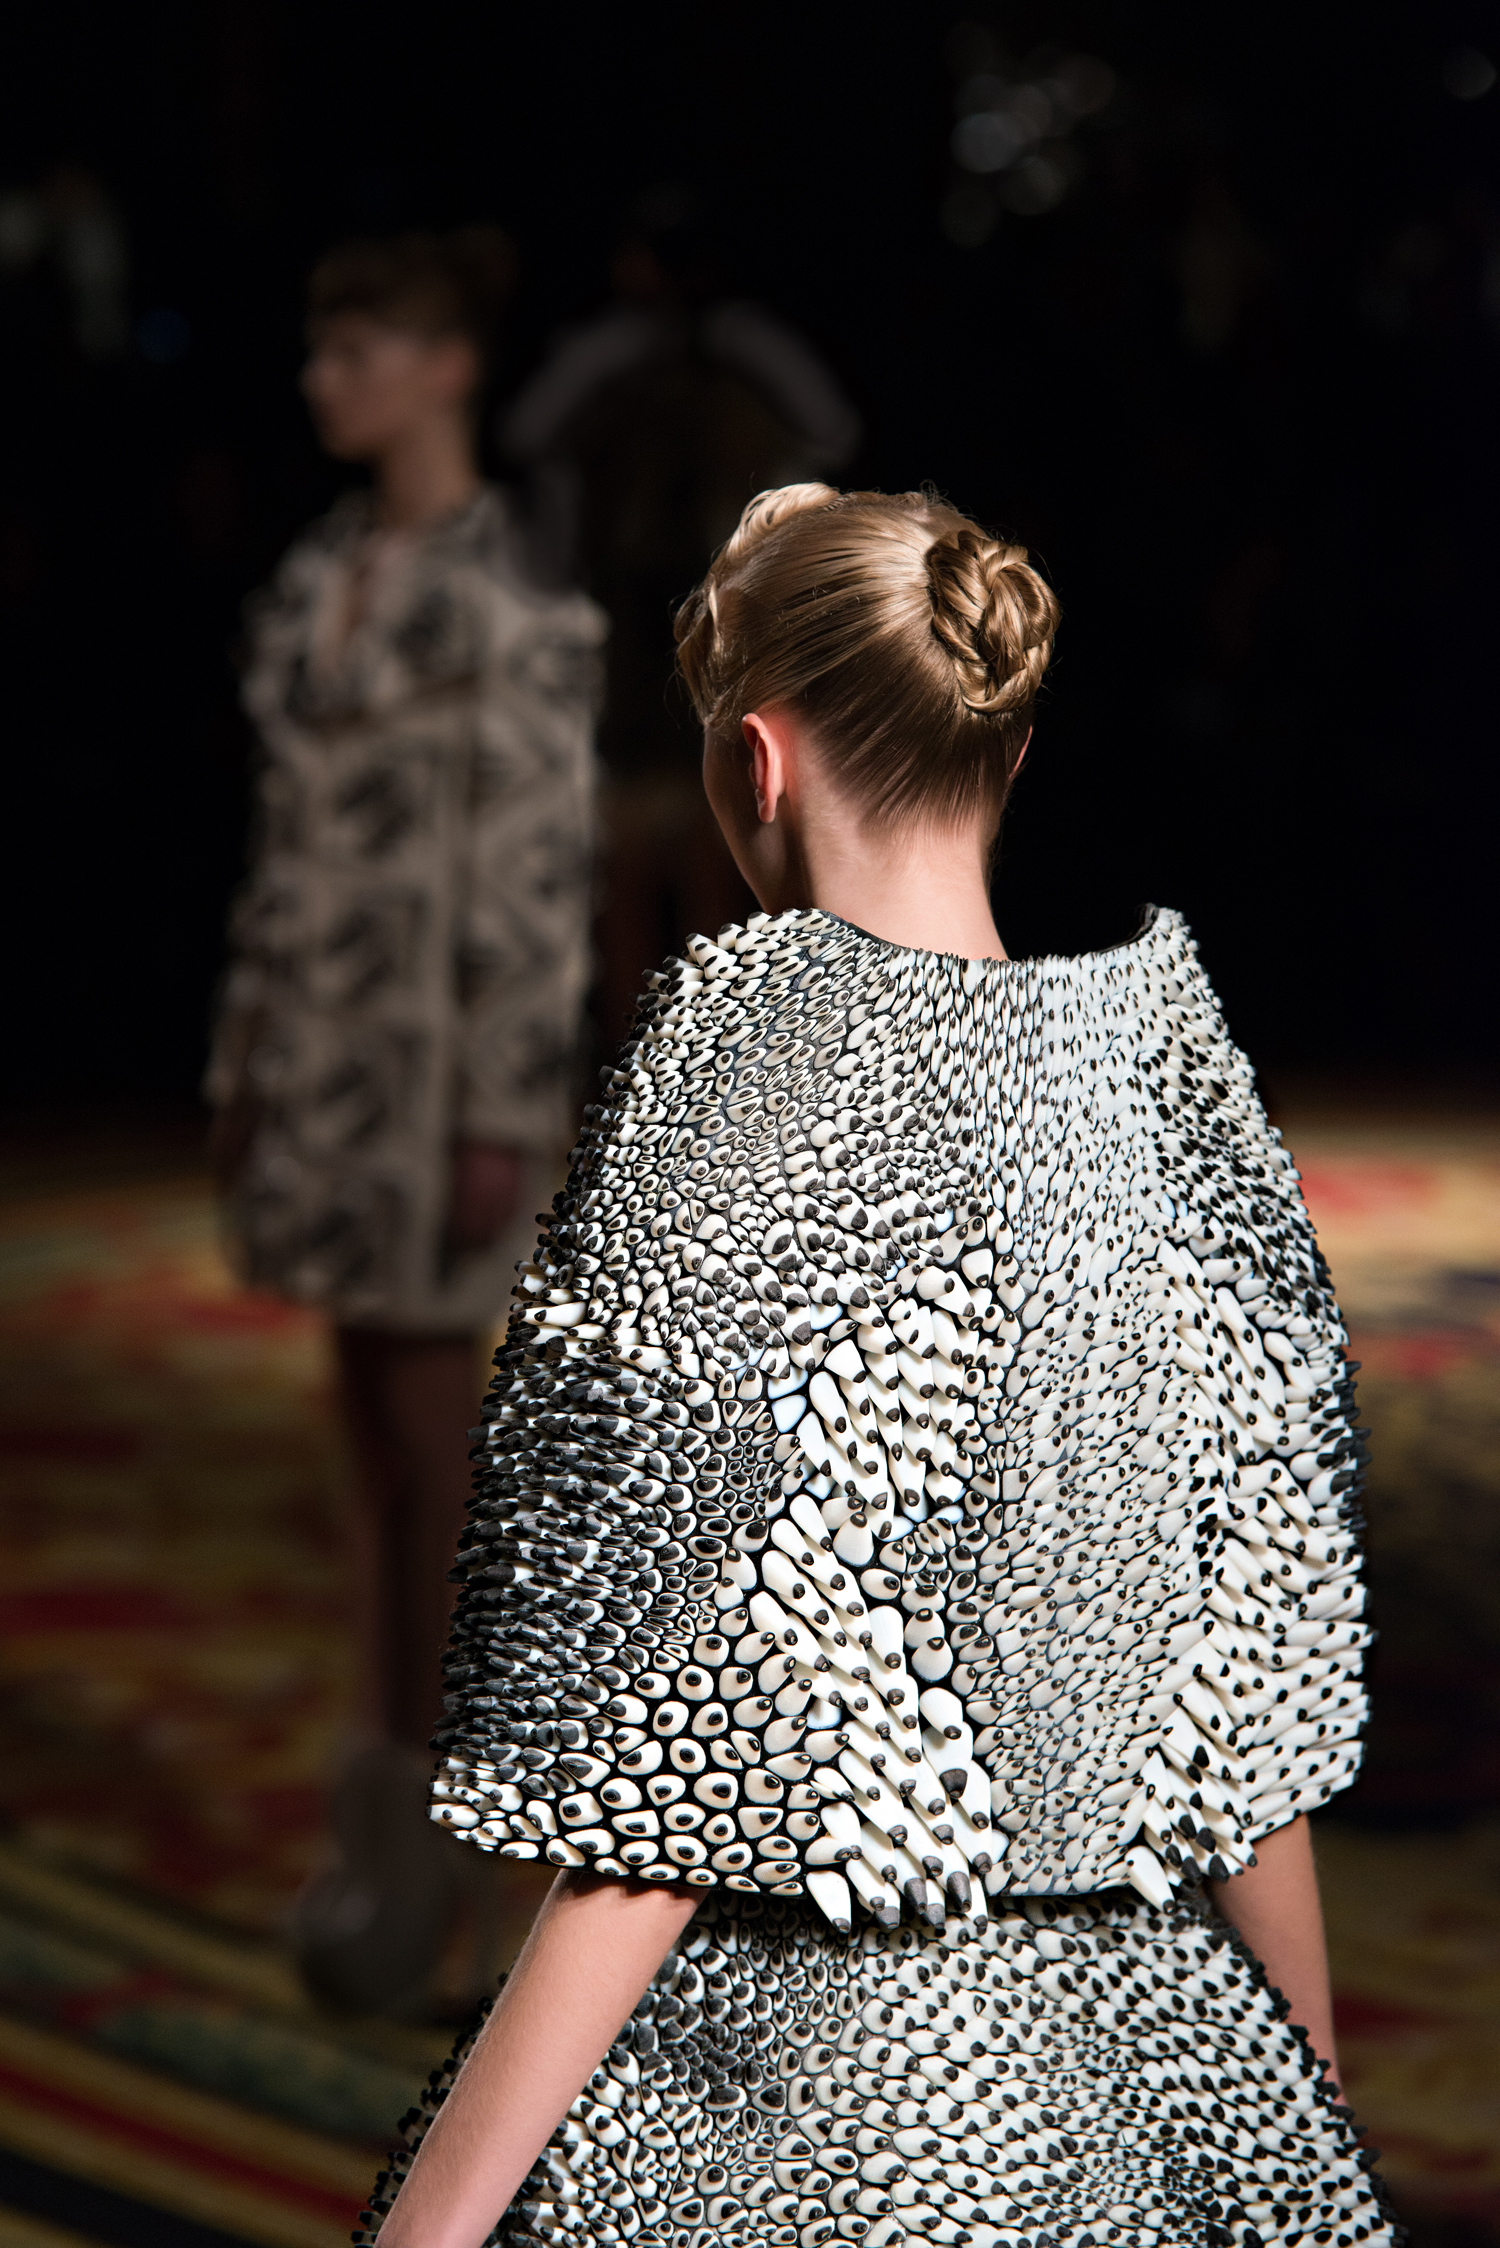 Stratasys-3D-Printed-Cape&Skirt-with-Objet-Connex-Multi-material-3DPrinted-Technology4_300dpi.jpg